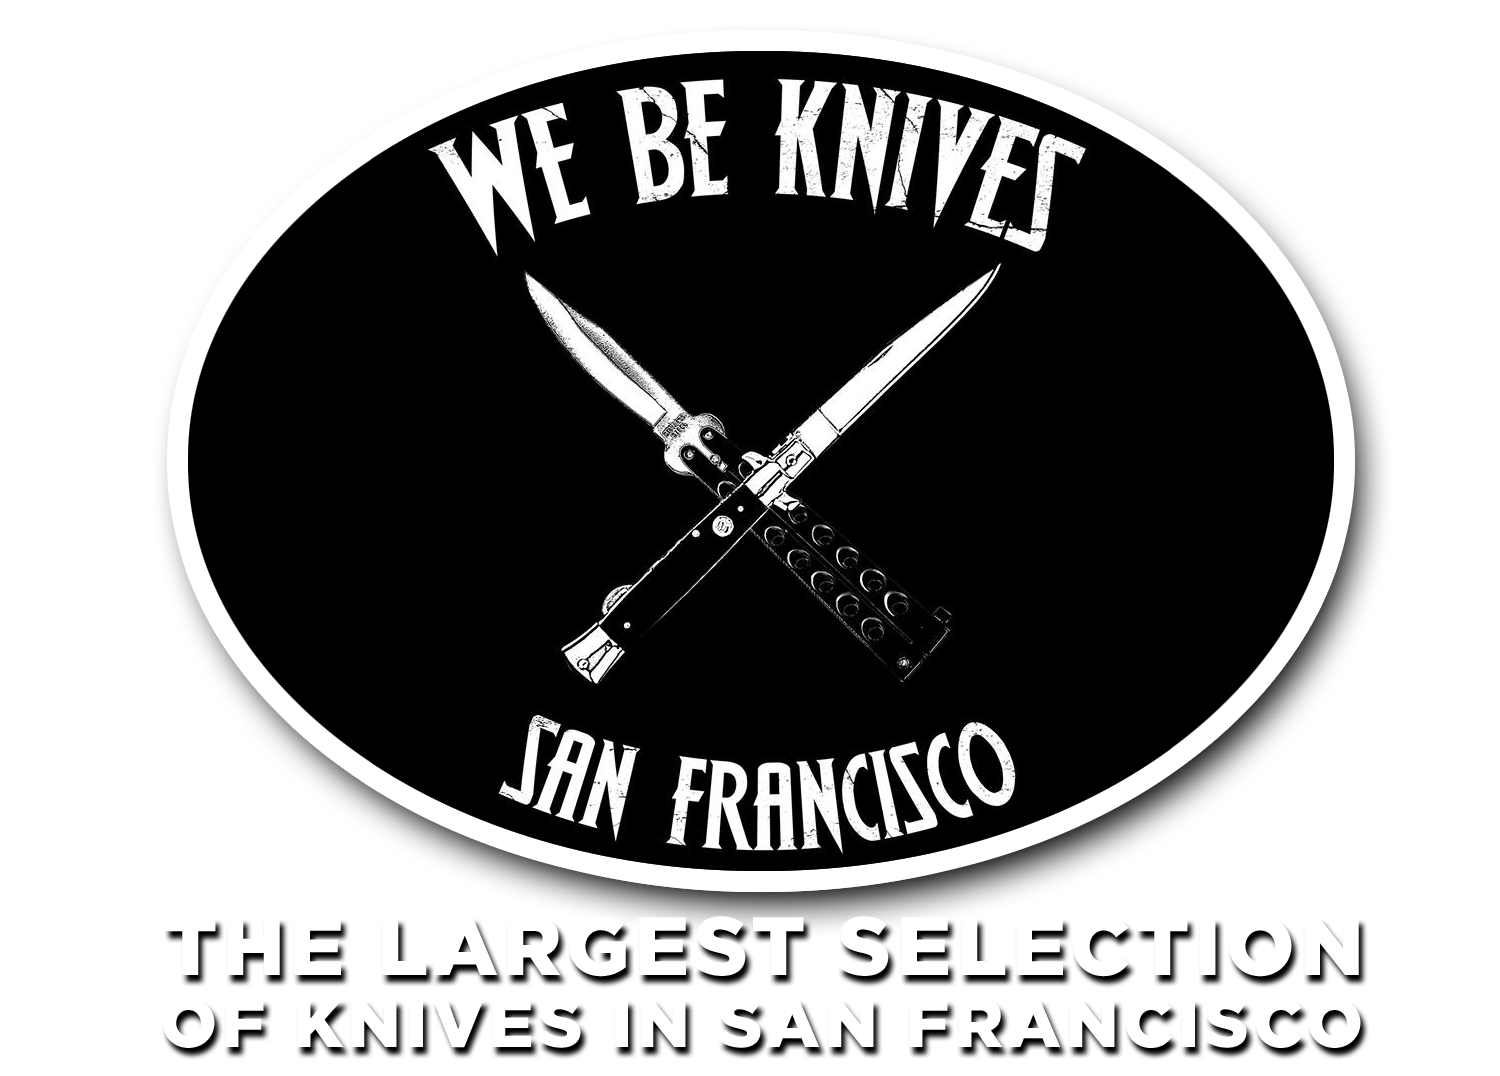 We Be Knives